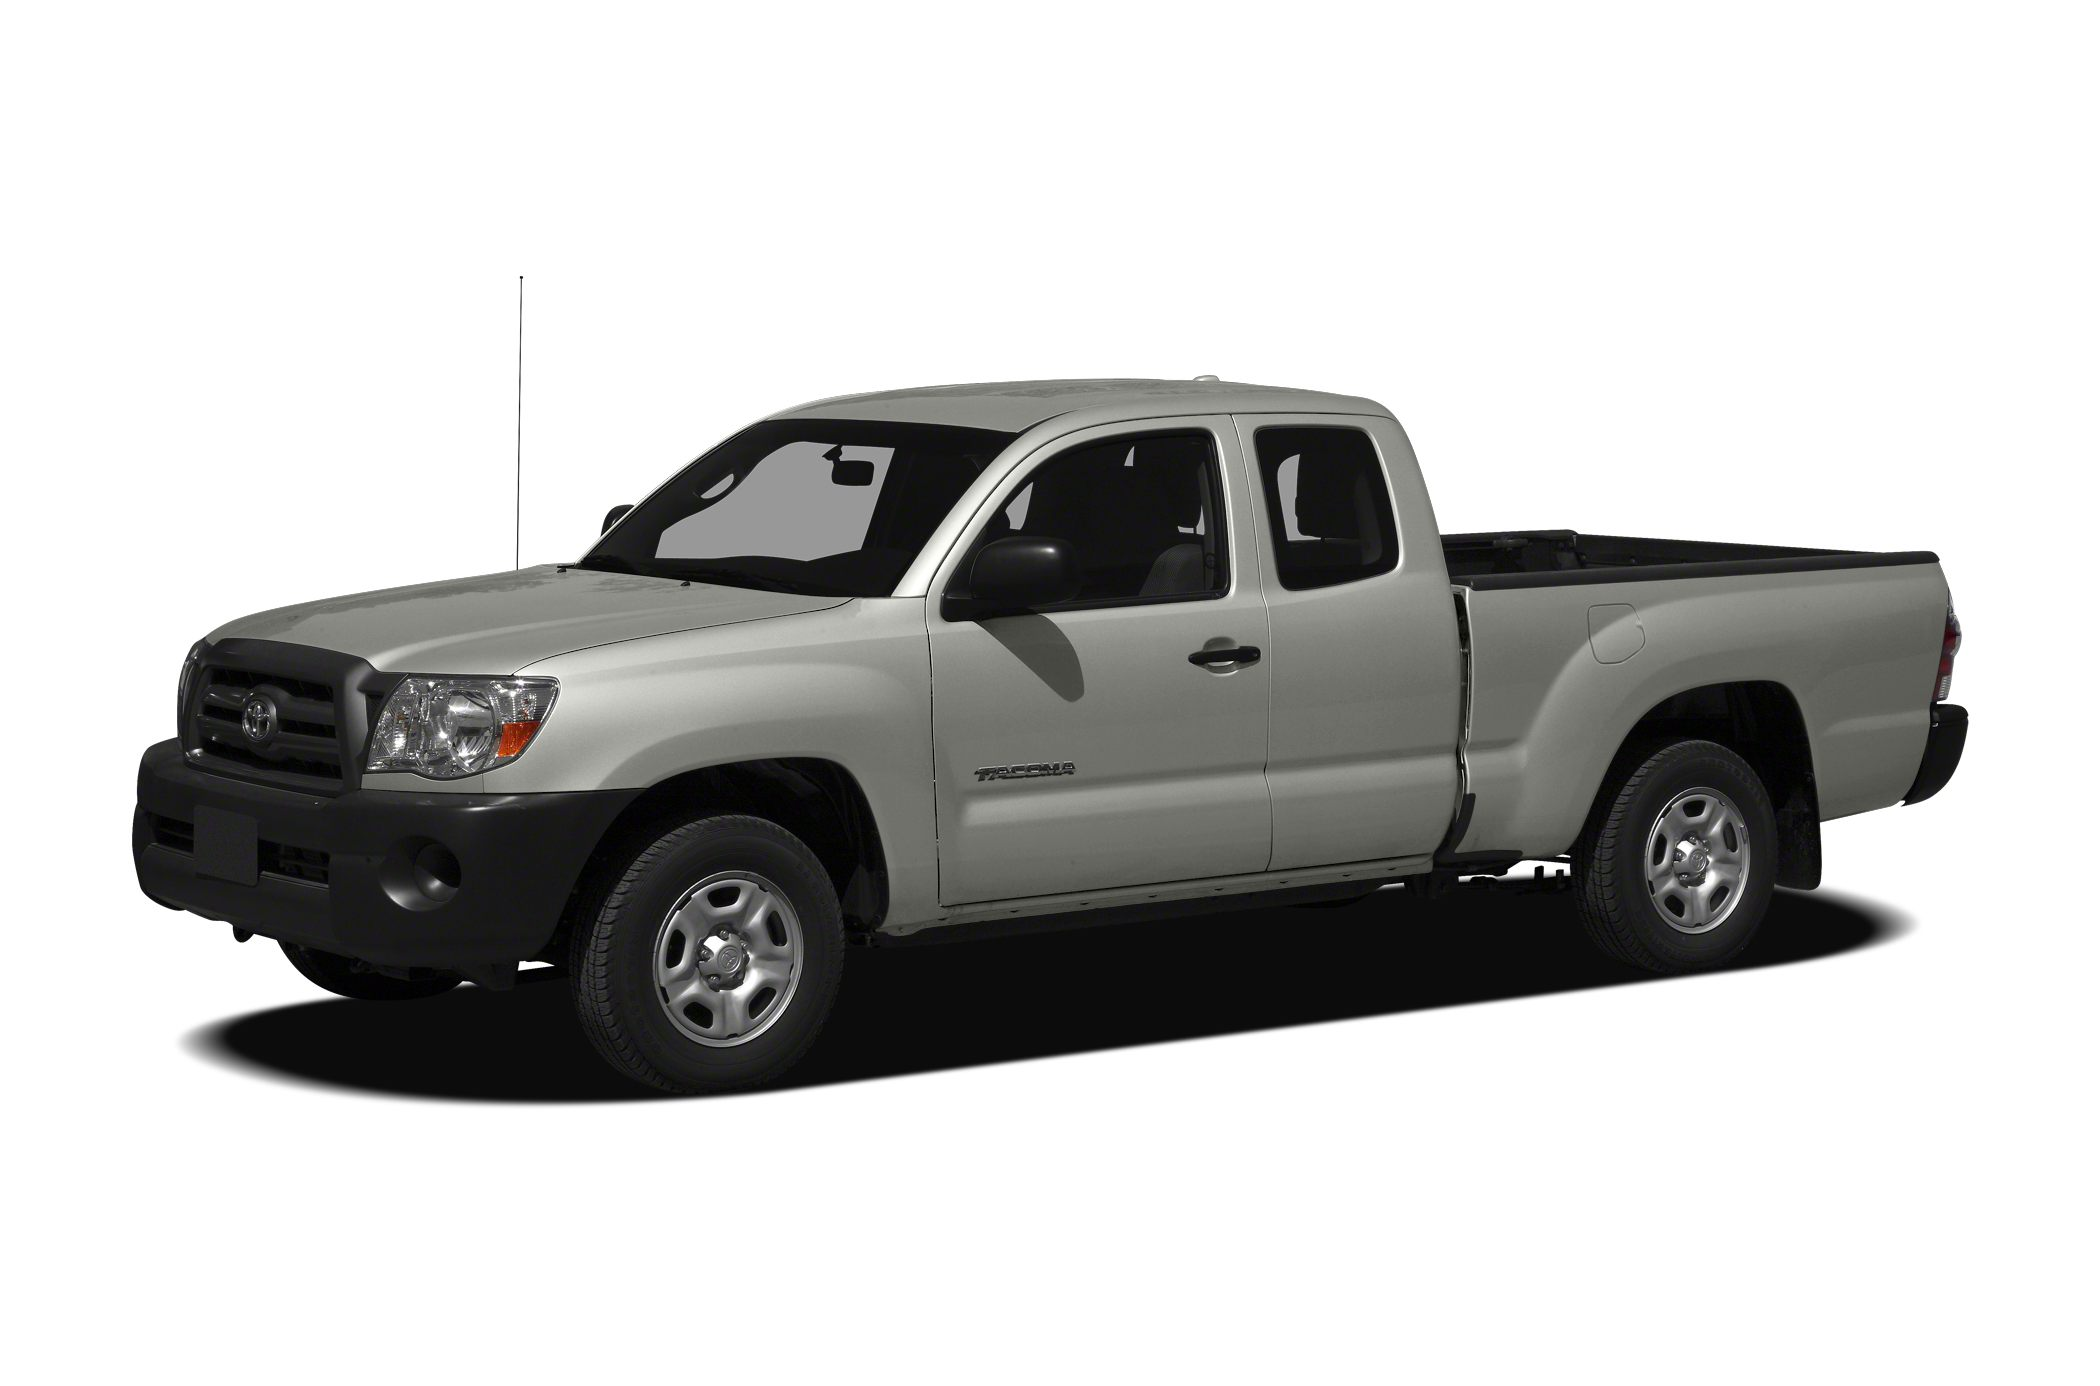 2010 Toyota Tacoma Crew Cab Pickup for sale in Cicero for $24,990 with 53,759 miles